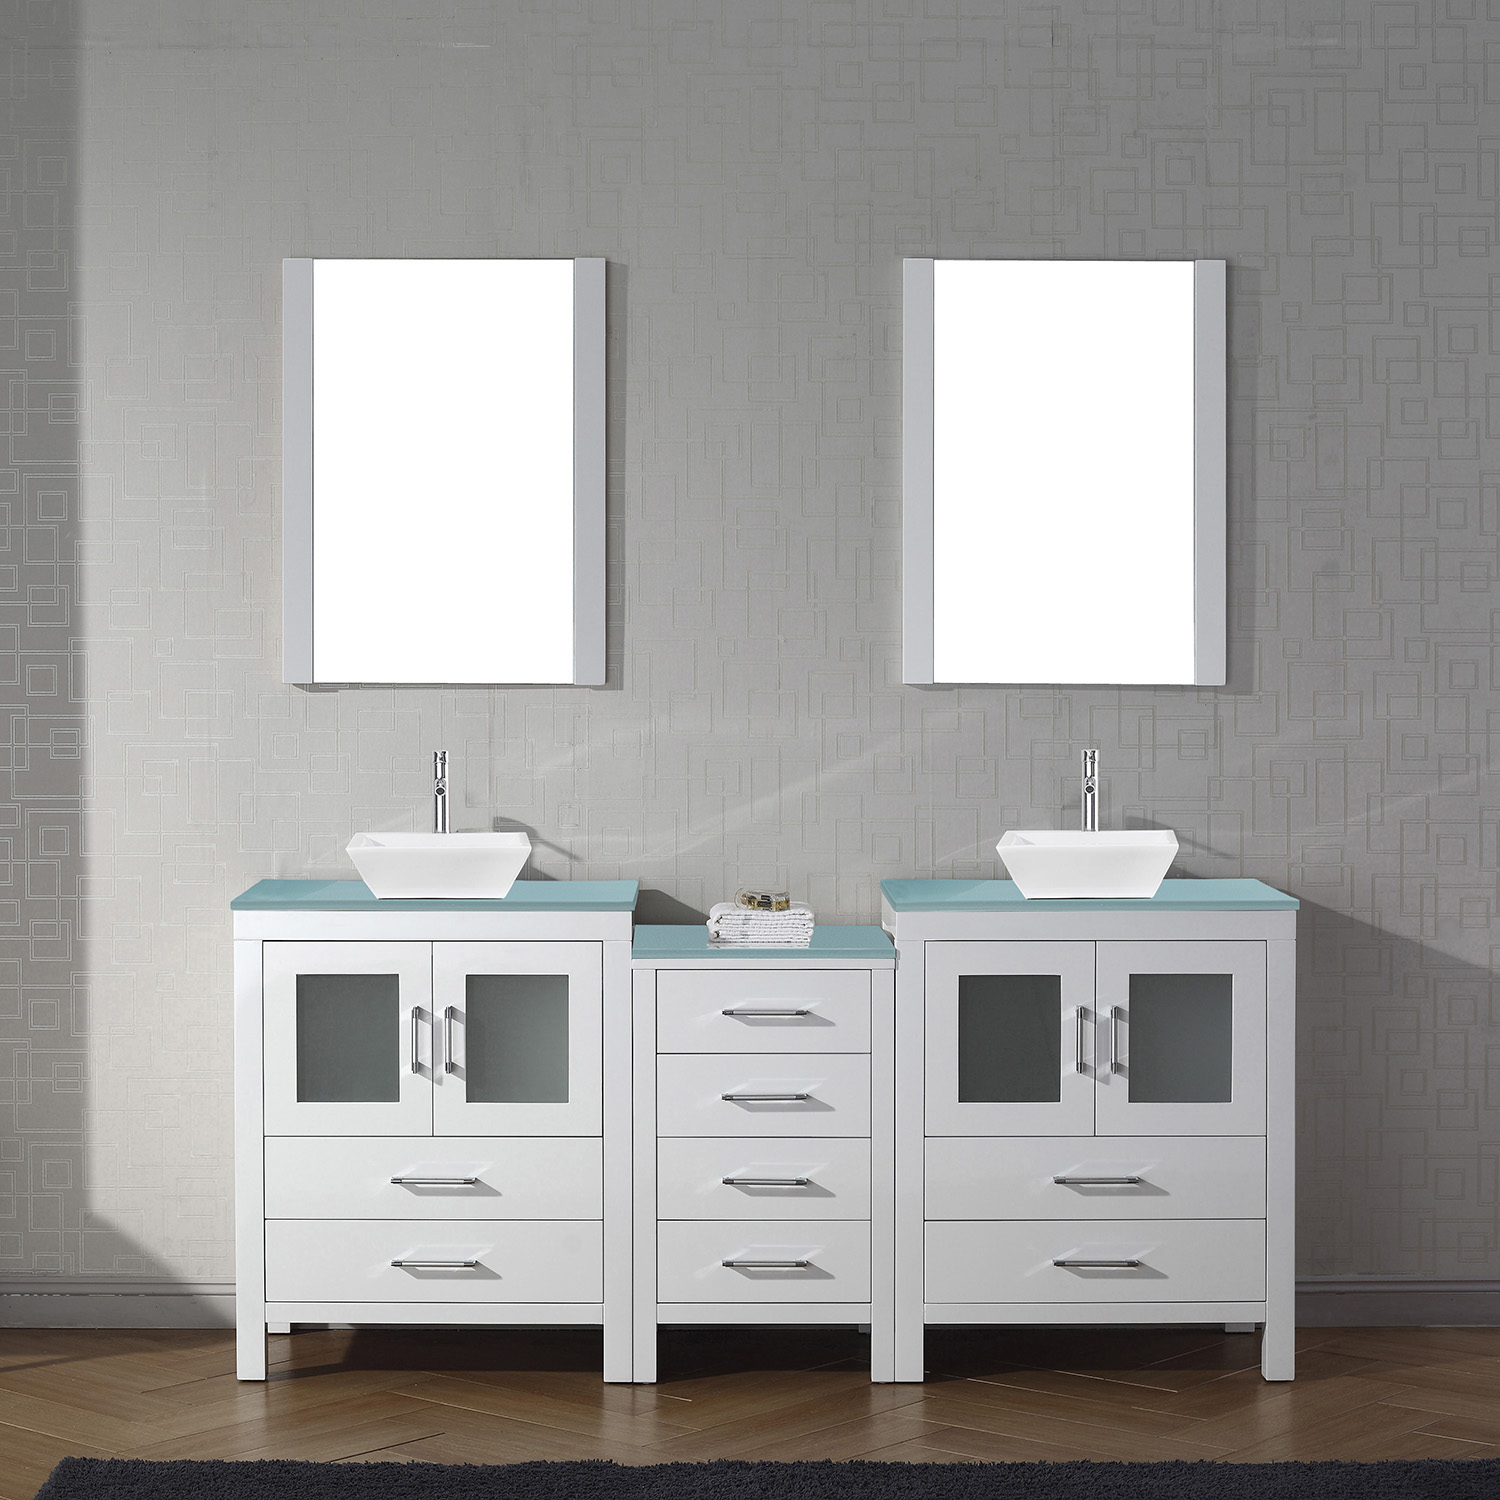 """74"""" Double Bath Vanity in White with Aqua Tempered Glass Top and Square Sink with Brushed Nickel Faucet and Mirrors"""